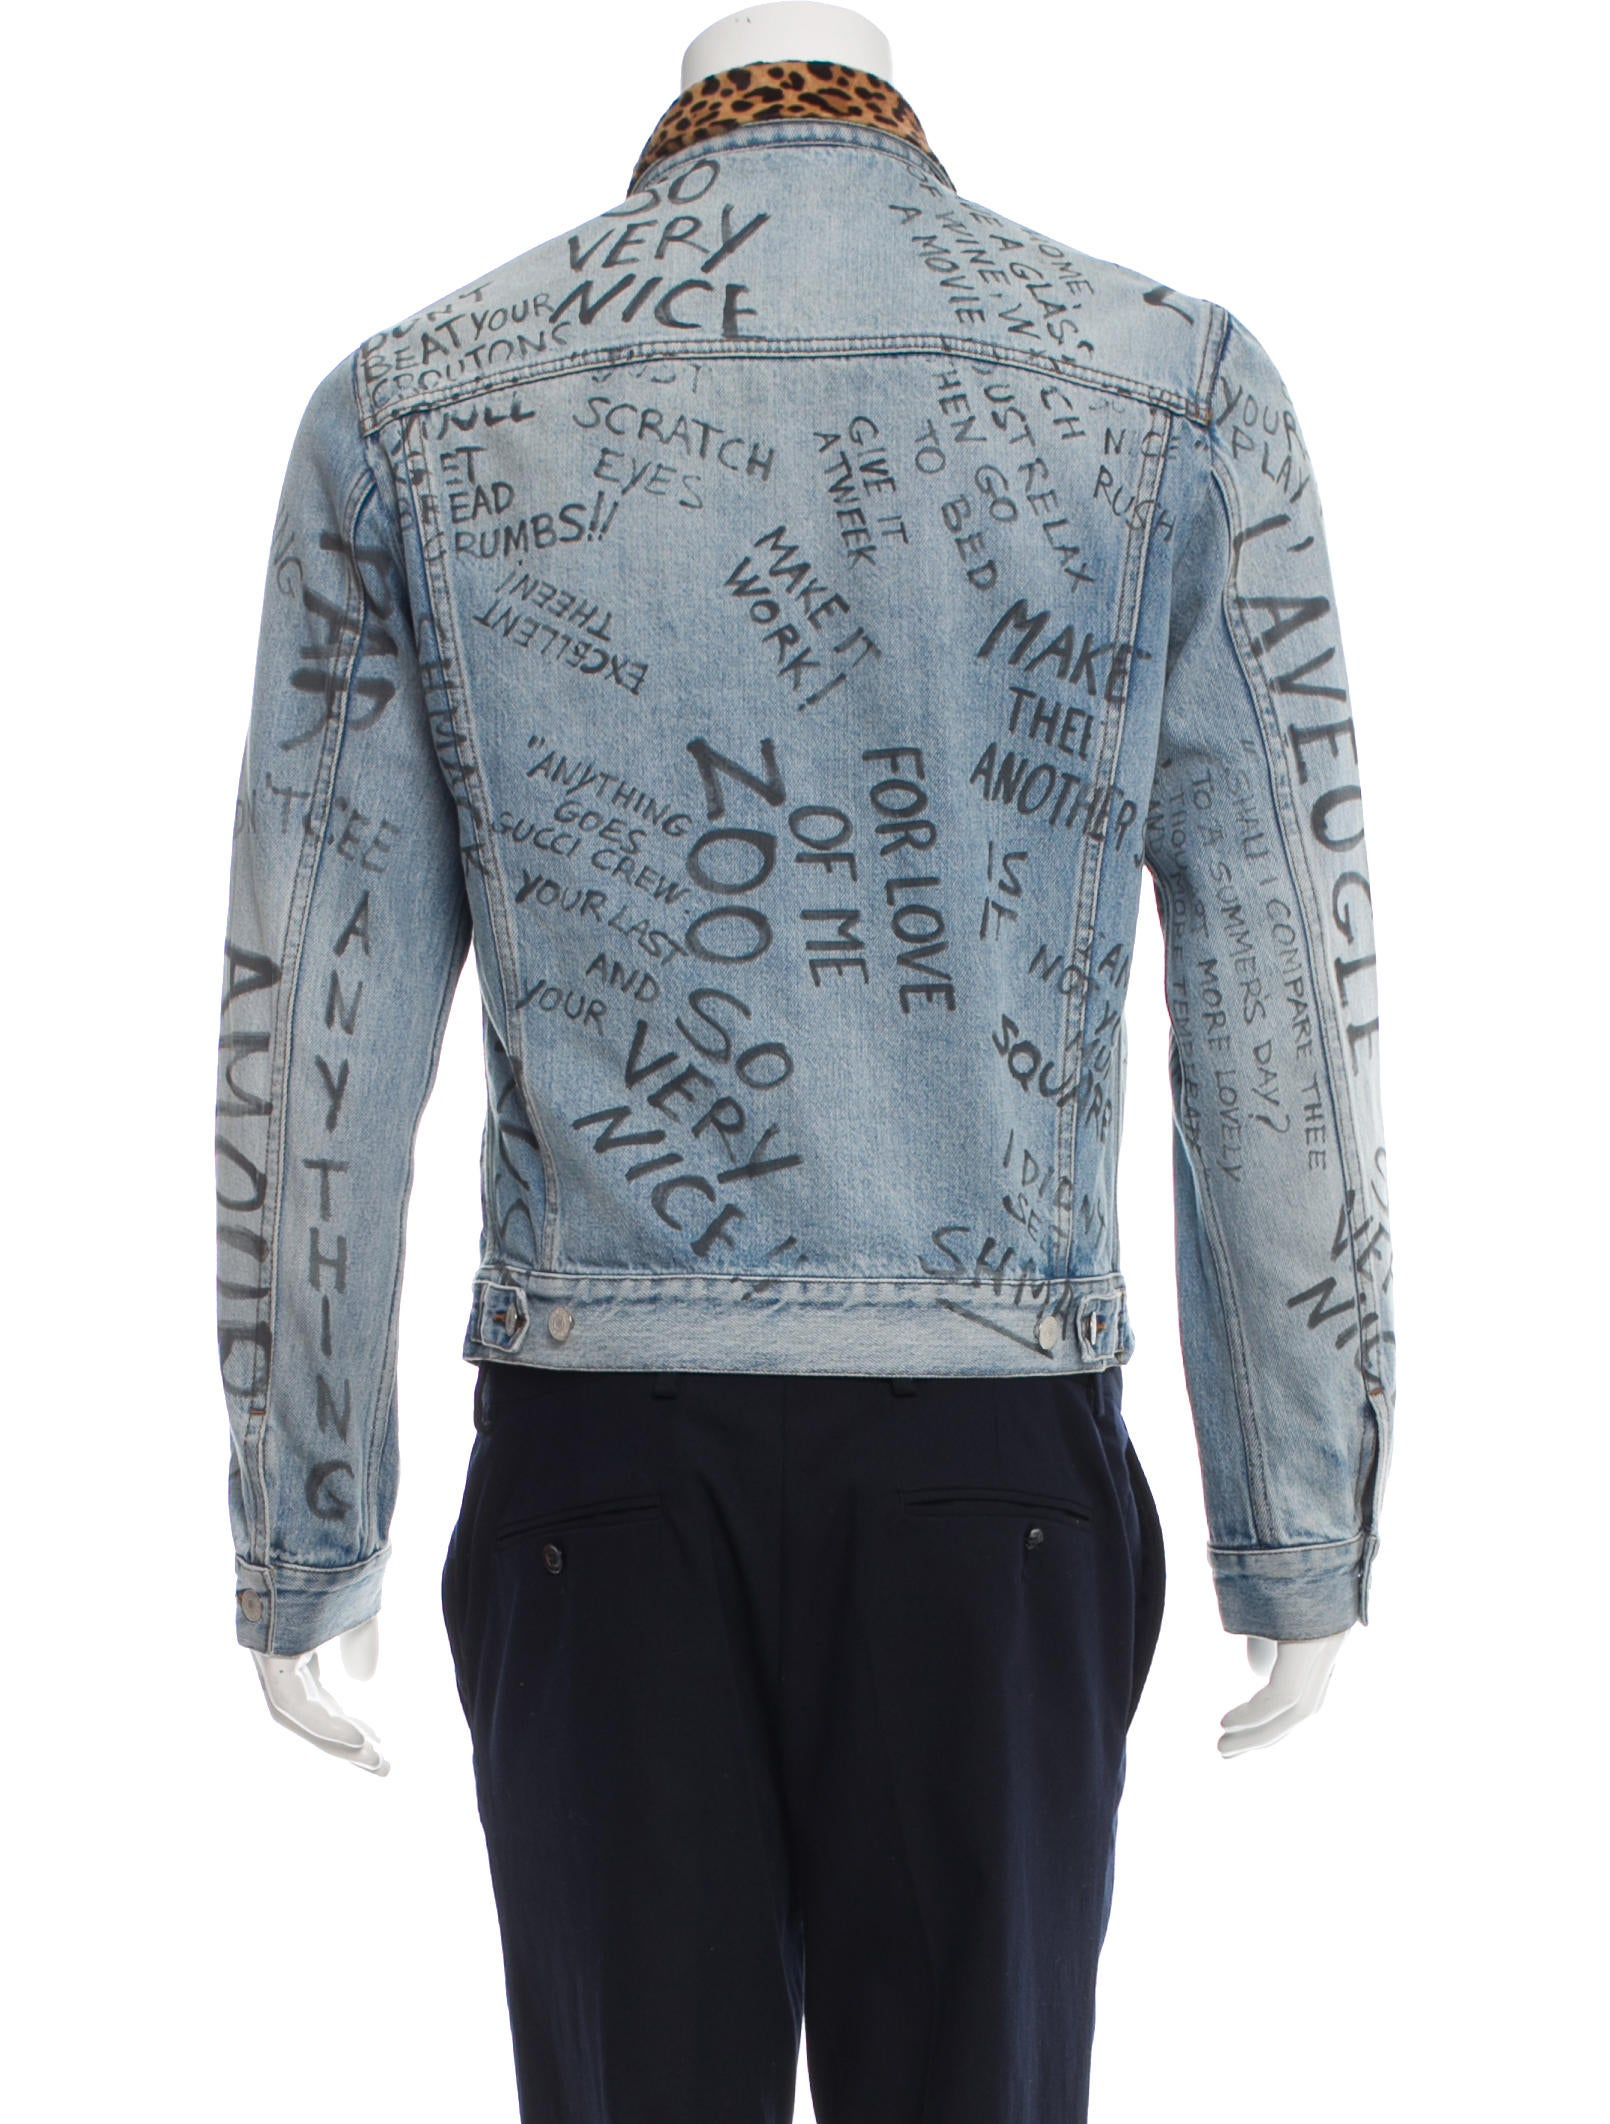 Gucci Scribbled Denim Jacket - Clothing - GUC152659 | The RealReal